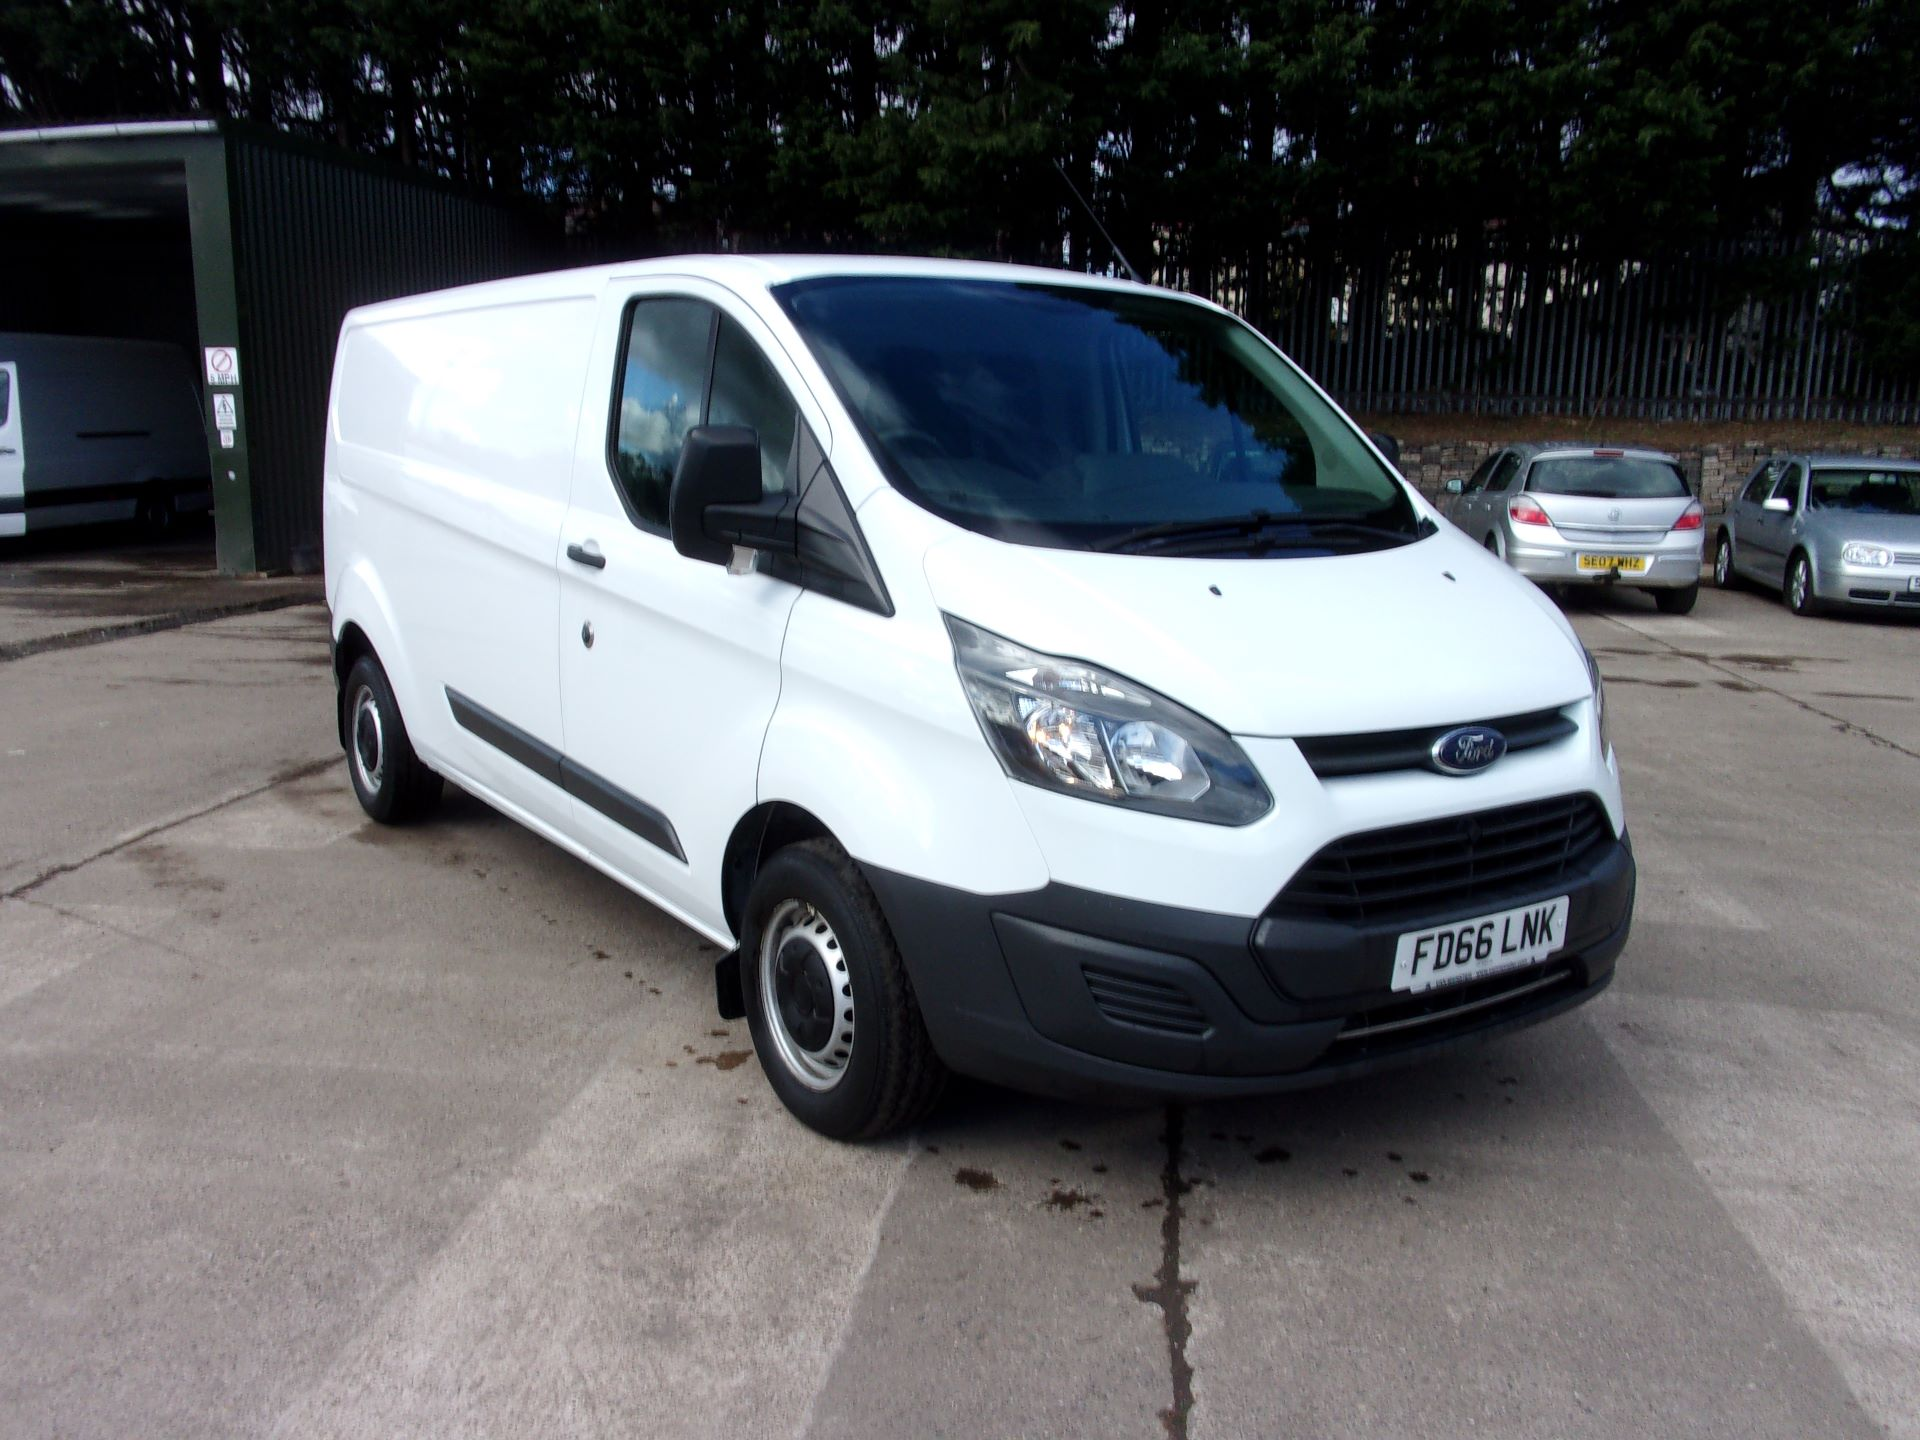 2016 Ford Transit Custom 290 L2 DIESEL FWD 2.0 TDCI 105PS LOW ROOF VAN EURO 6 (FD66LNK)